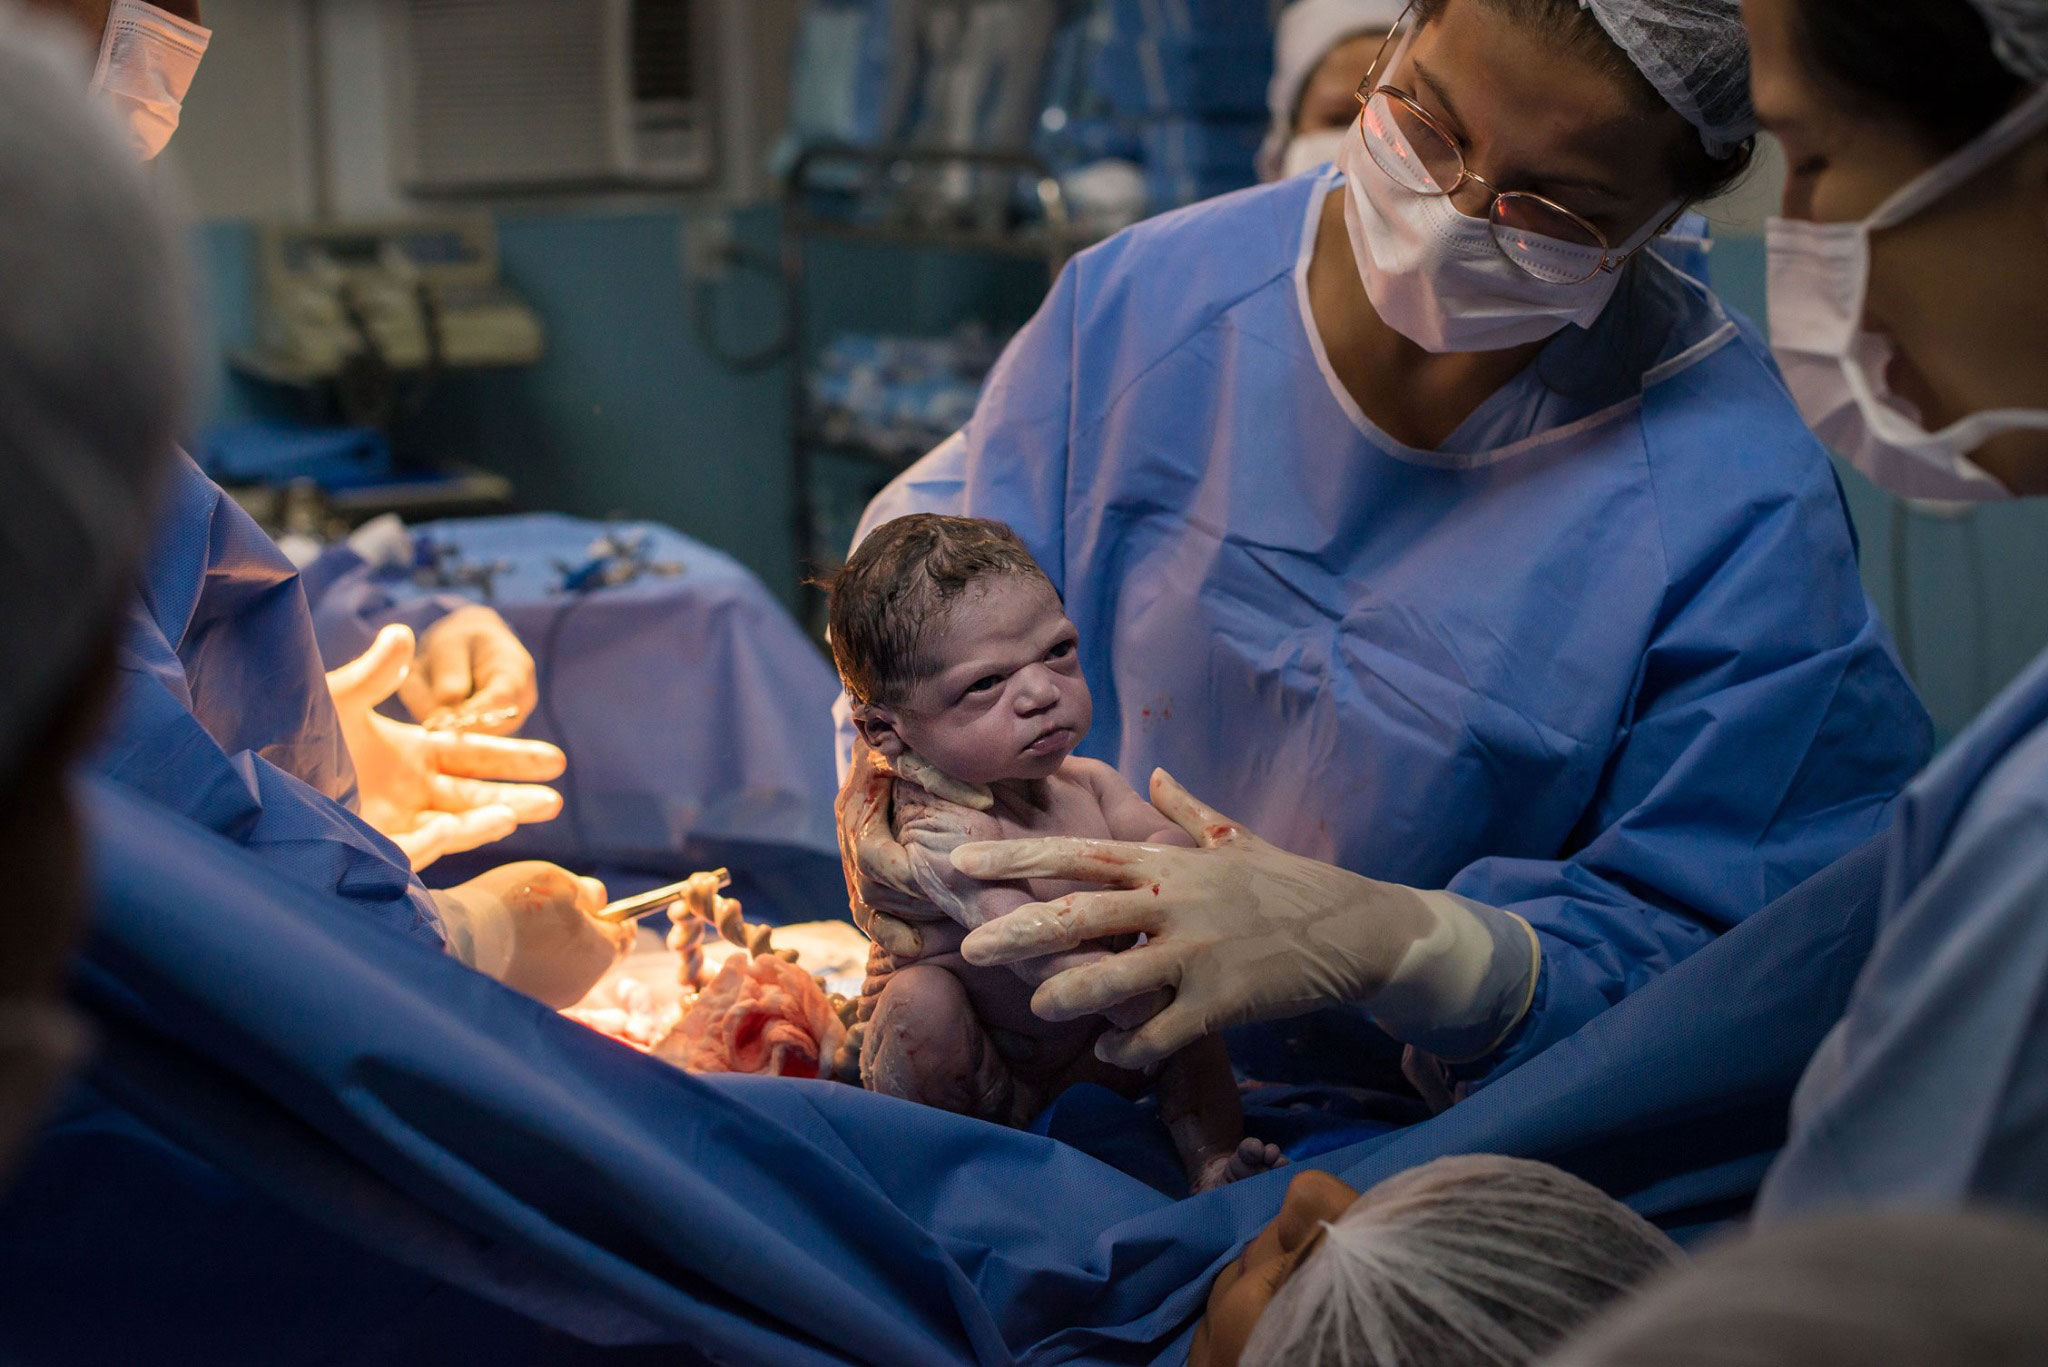 Newborn Baby Goes Viral for Making Hilarious Facial Expression Immediately After C-Section